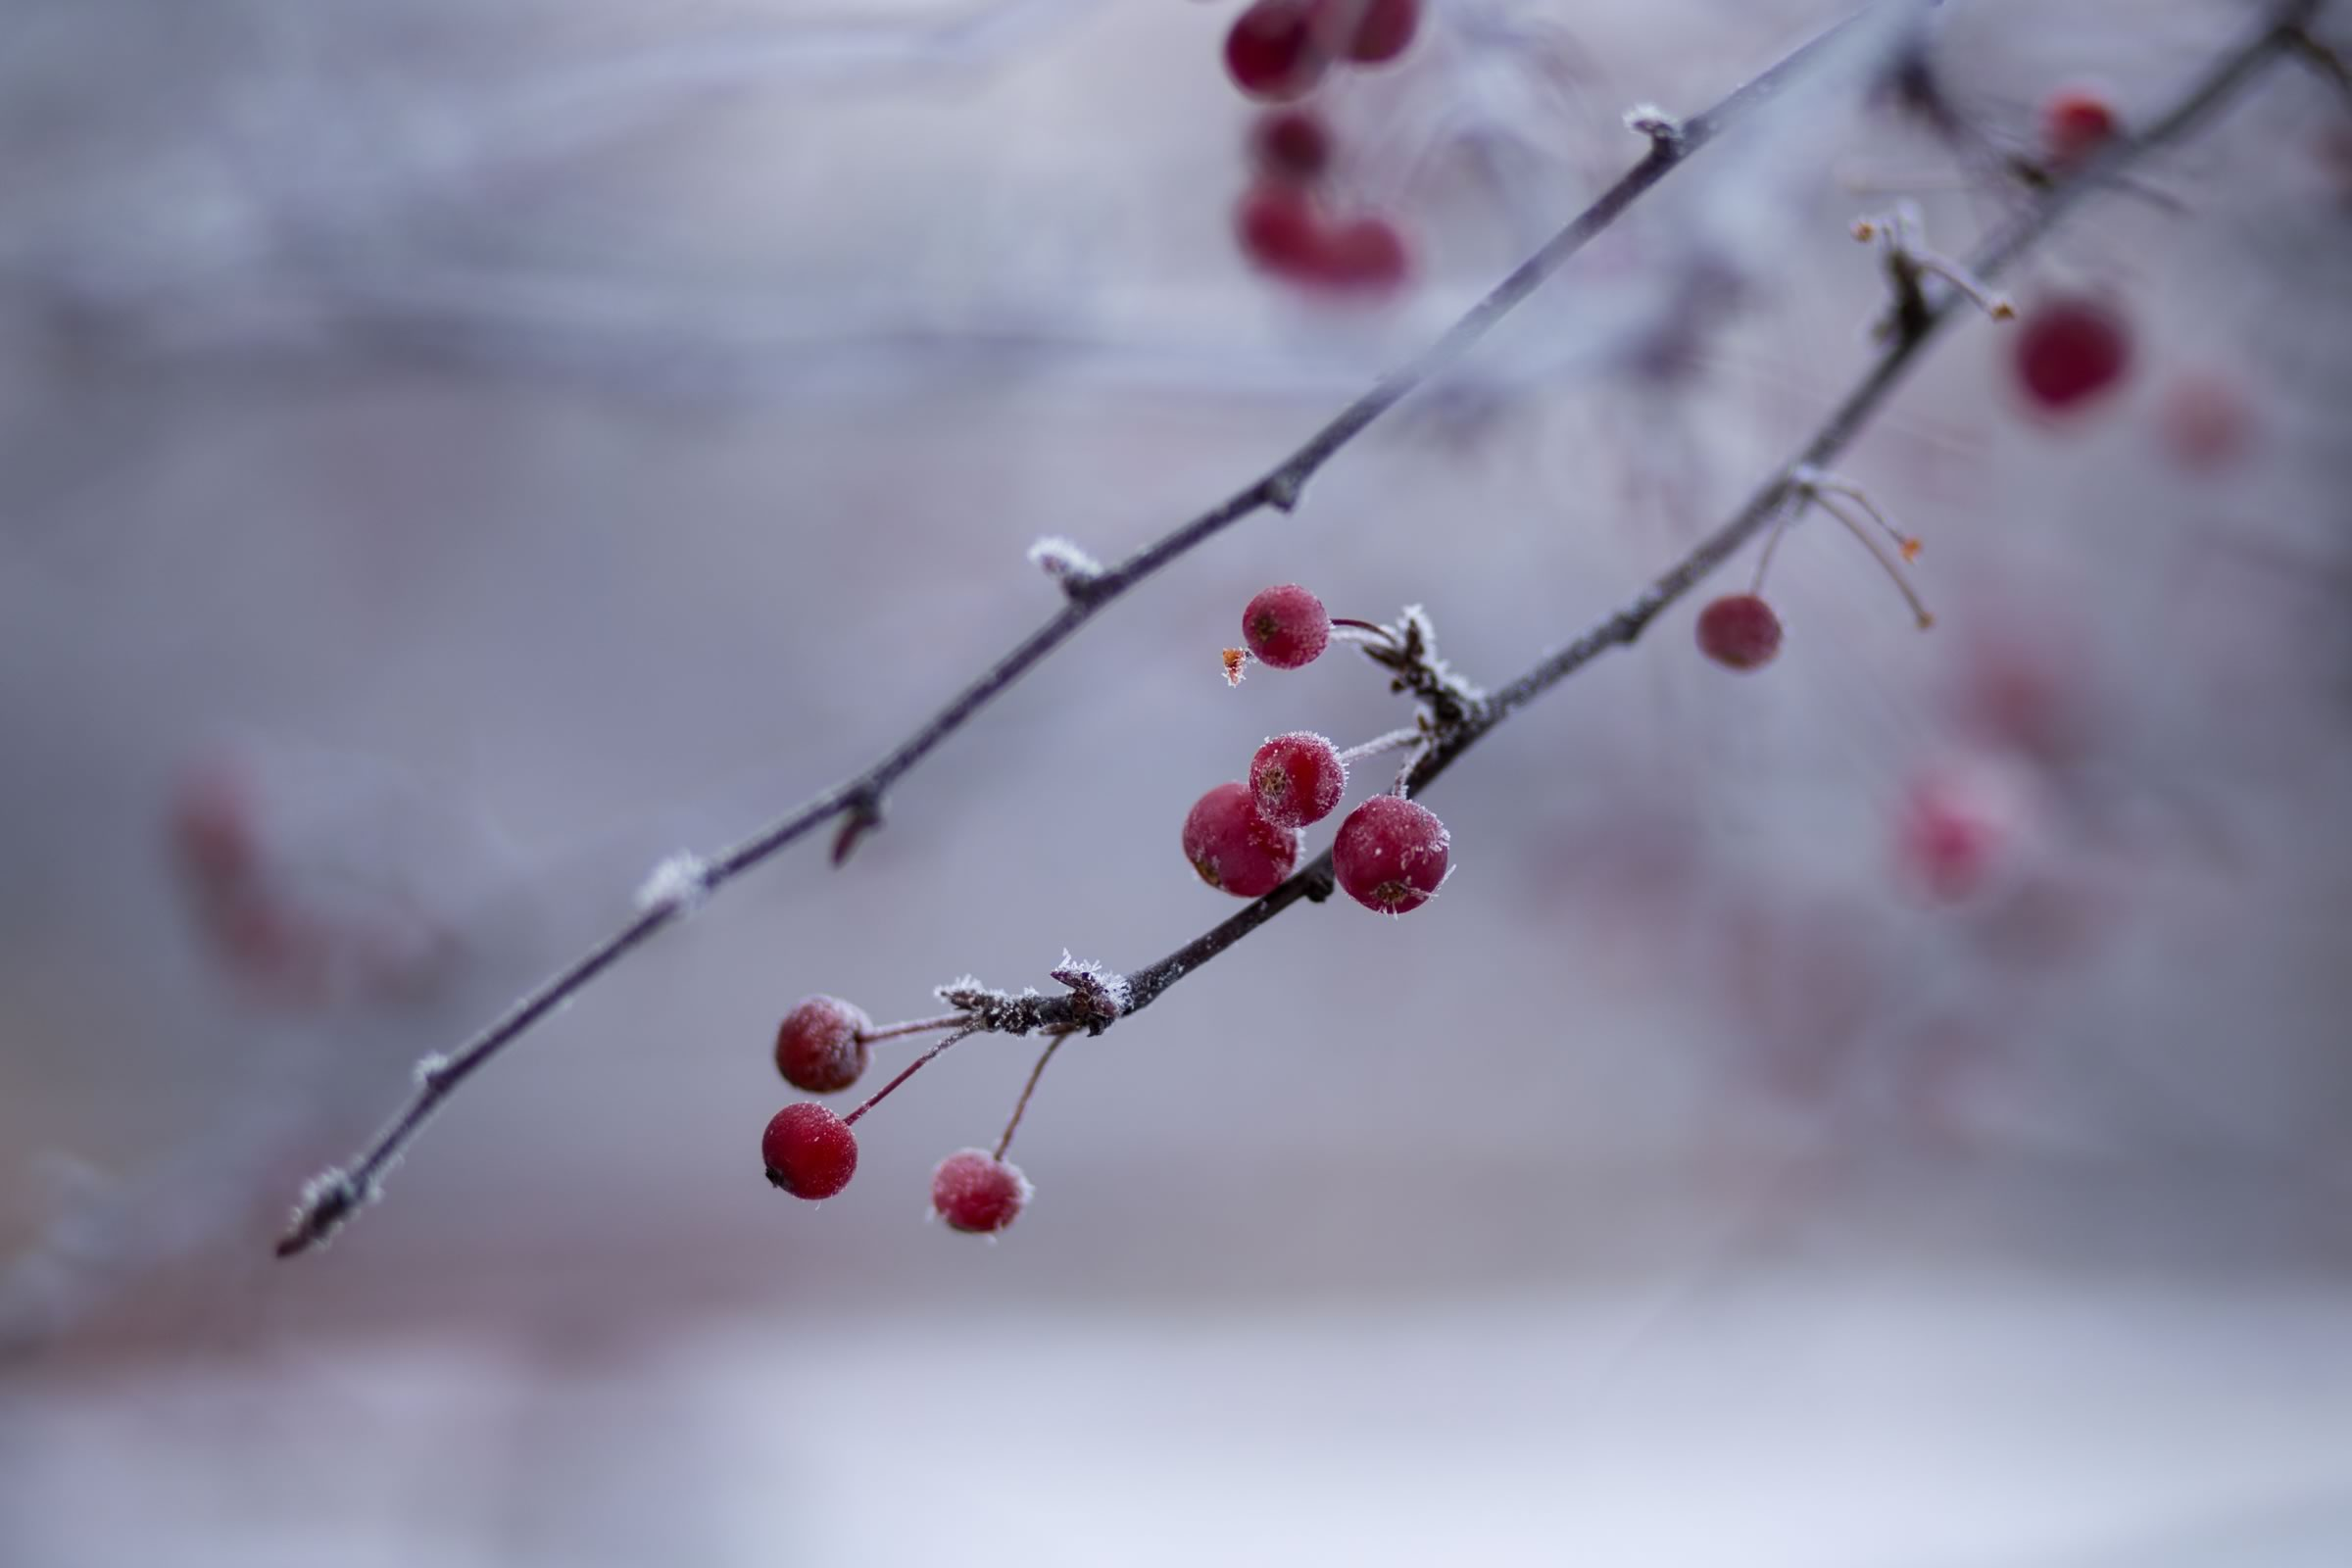 Winter holly berries